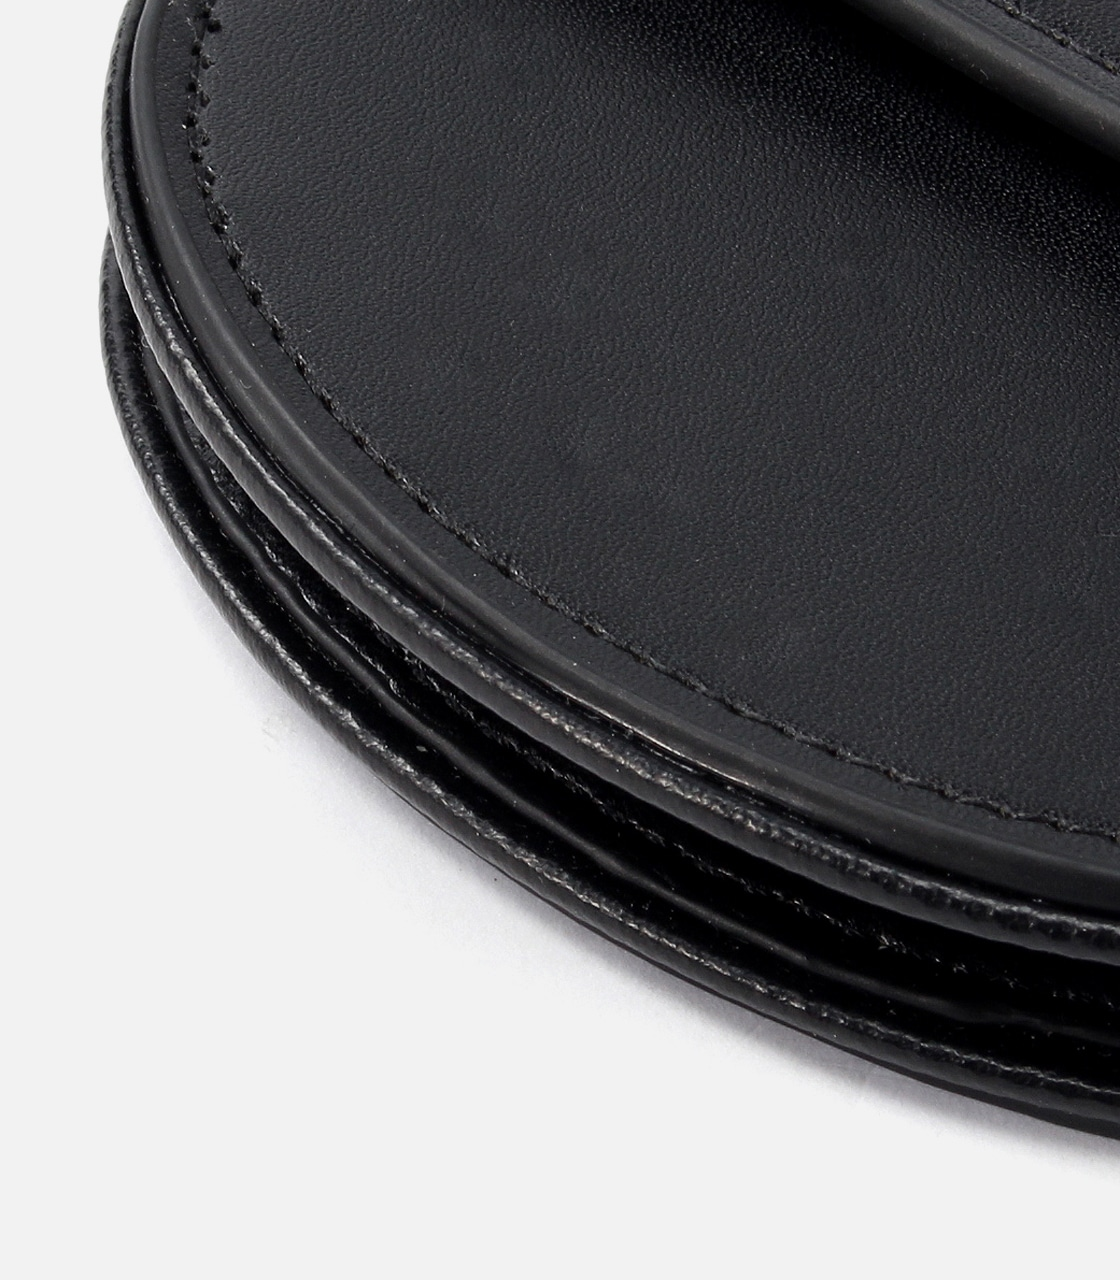 【AZUL BY MOUSSY】HARF ROUND WALLET 詳細画像 BLK 4